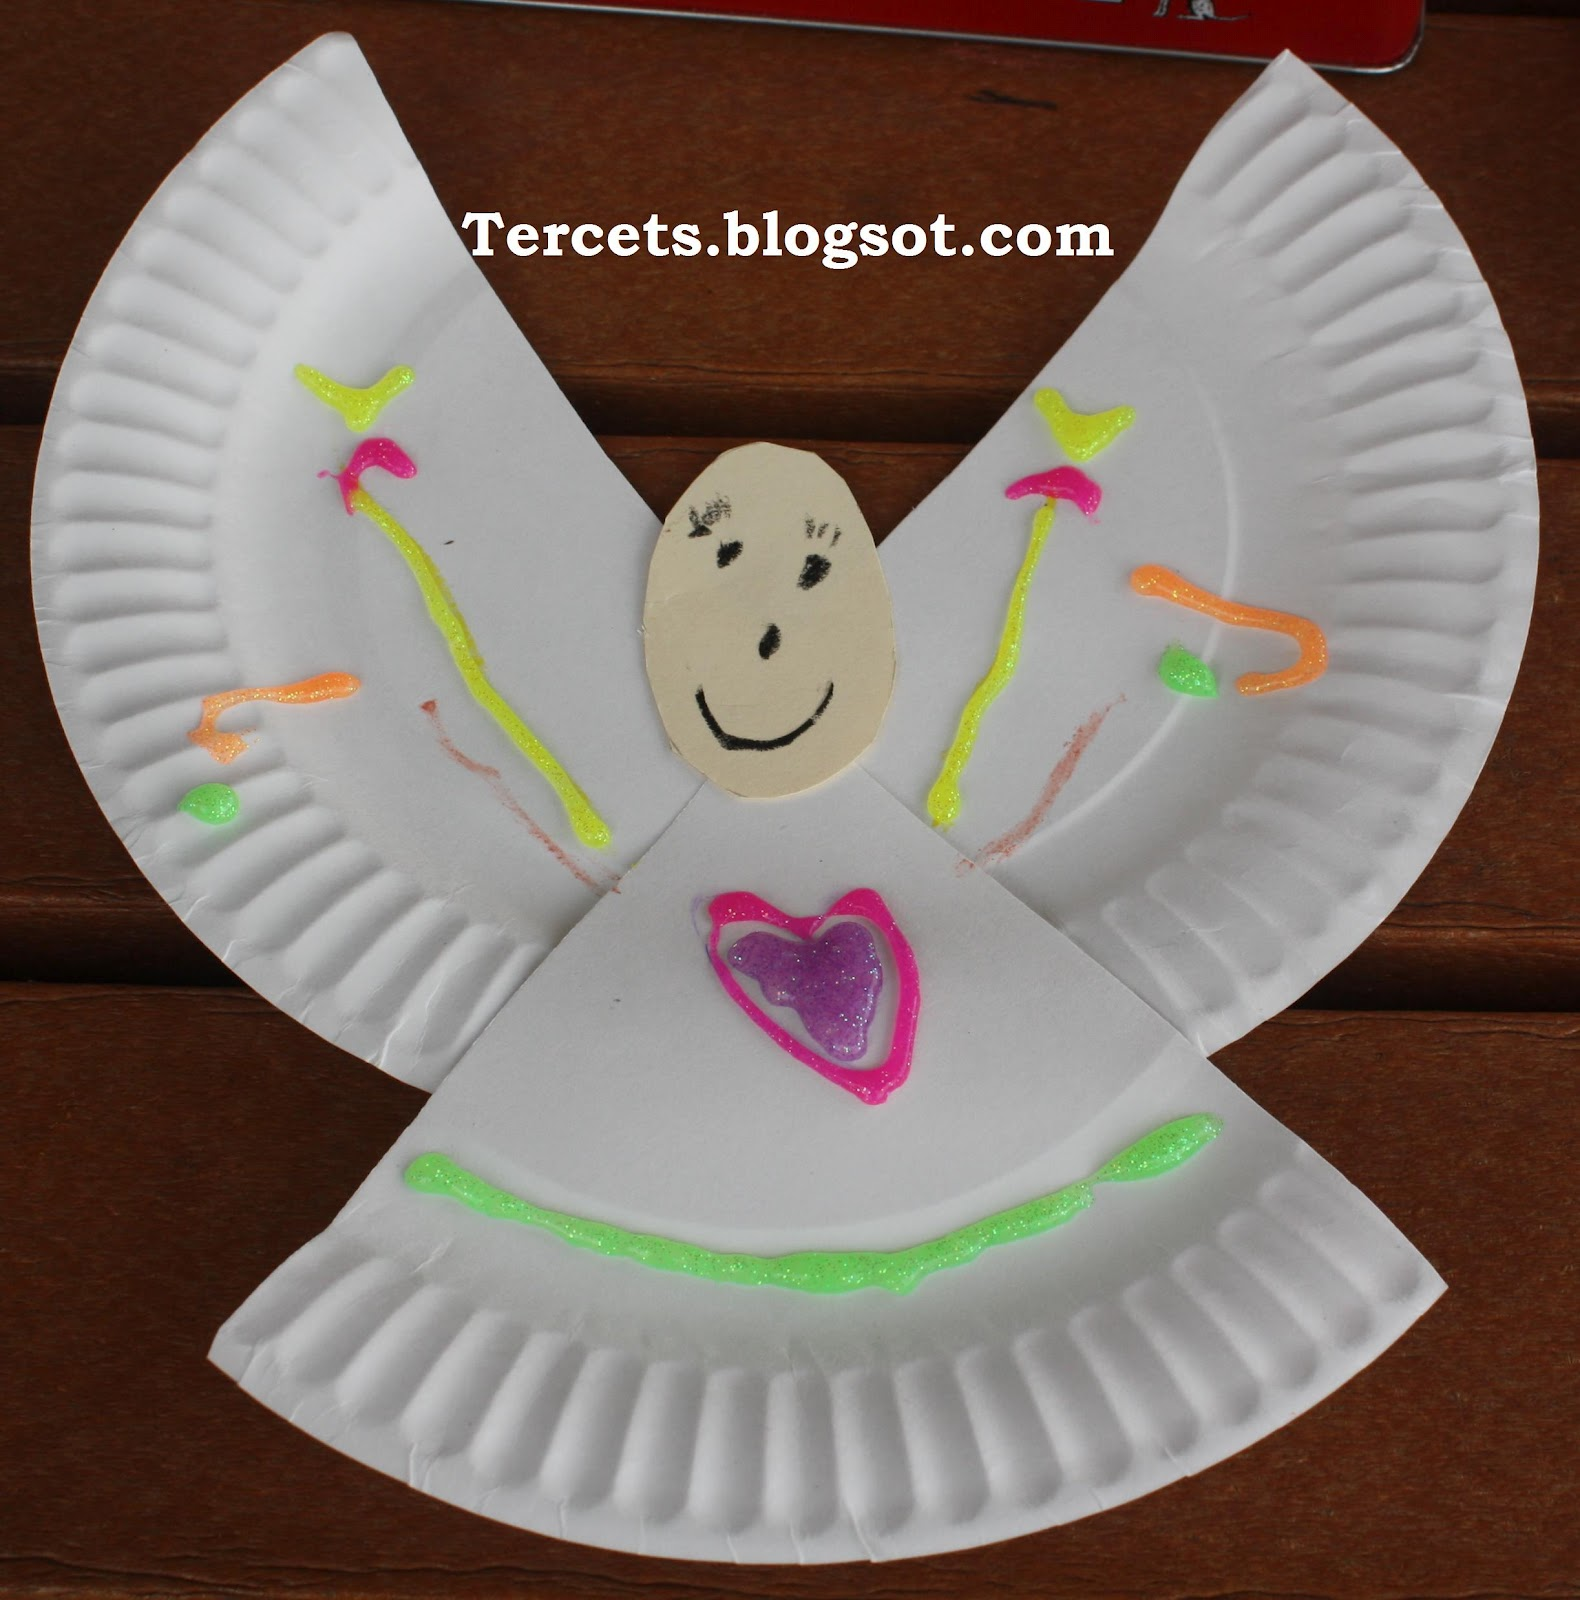 Christmas Crafts Paper Angels : Tercets angel craft for archangels or guardian angels